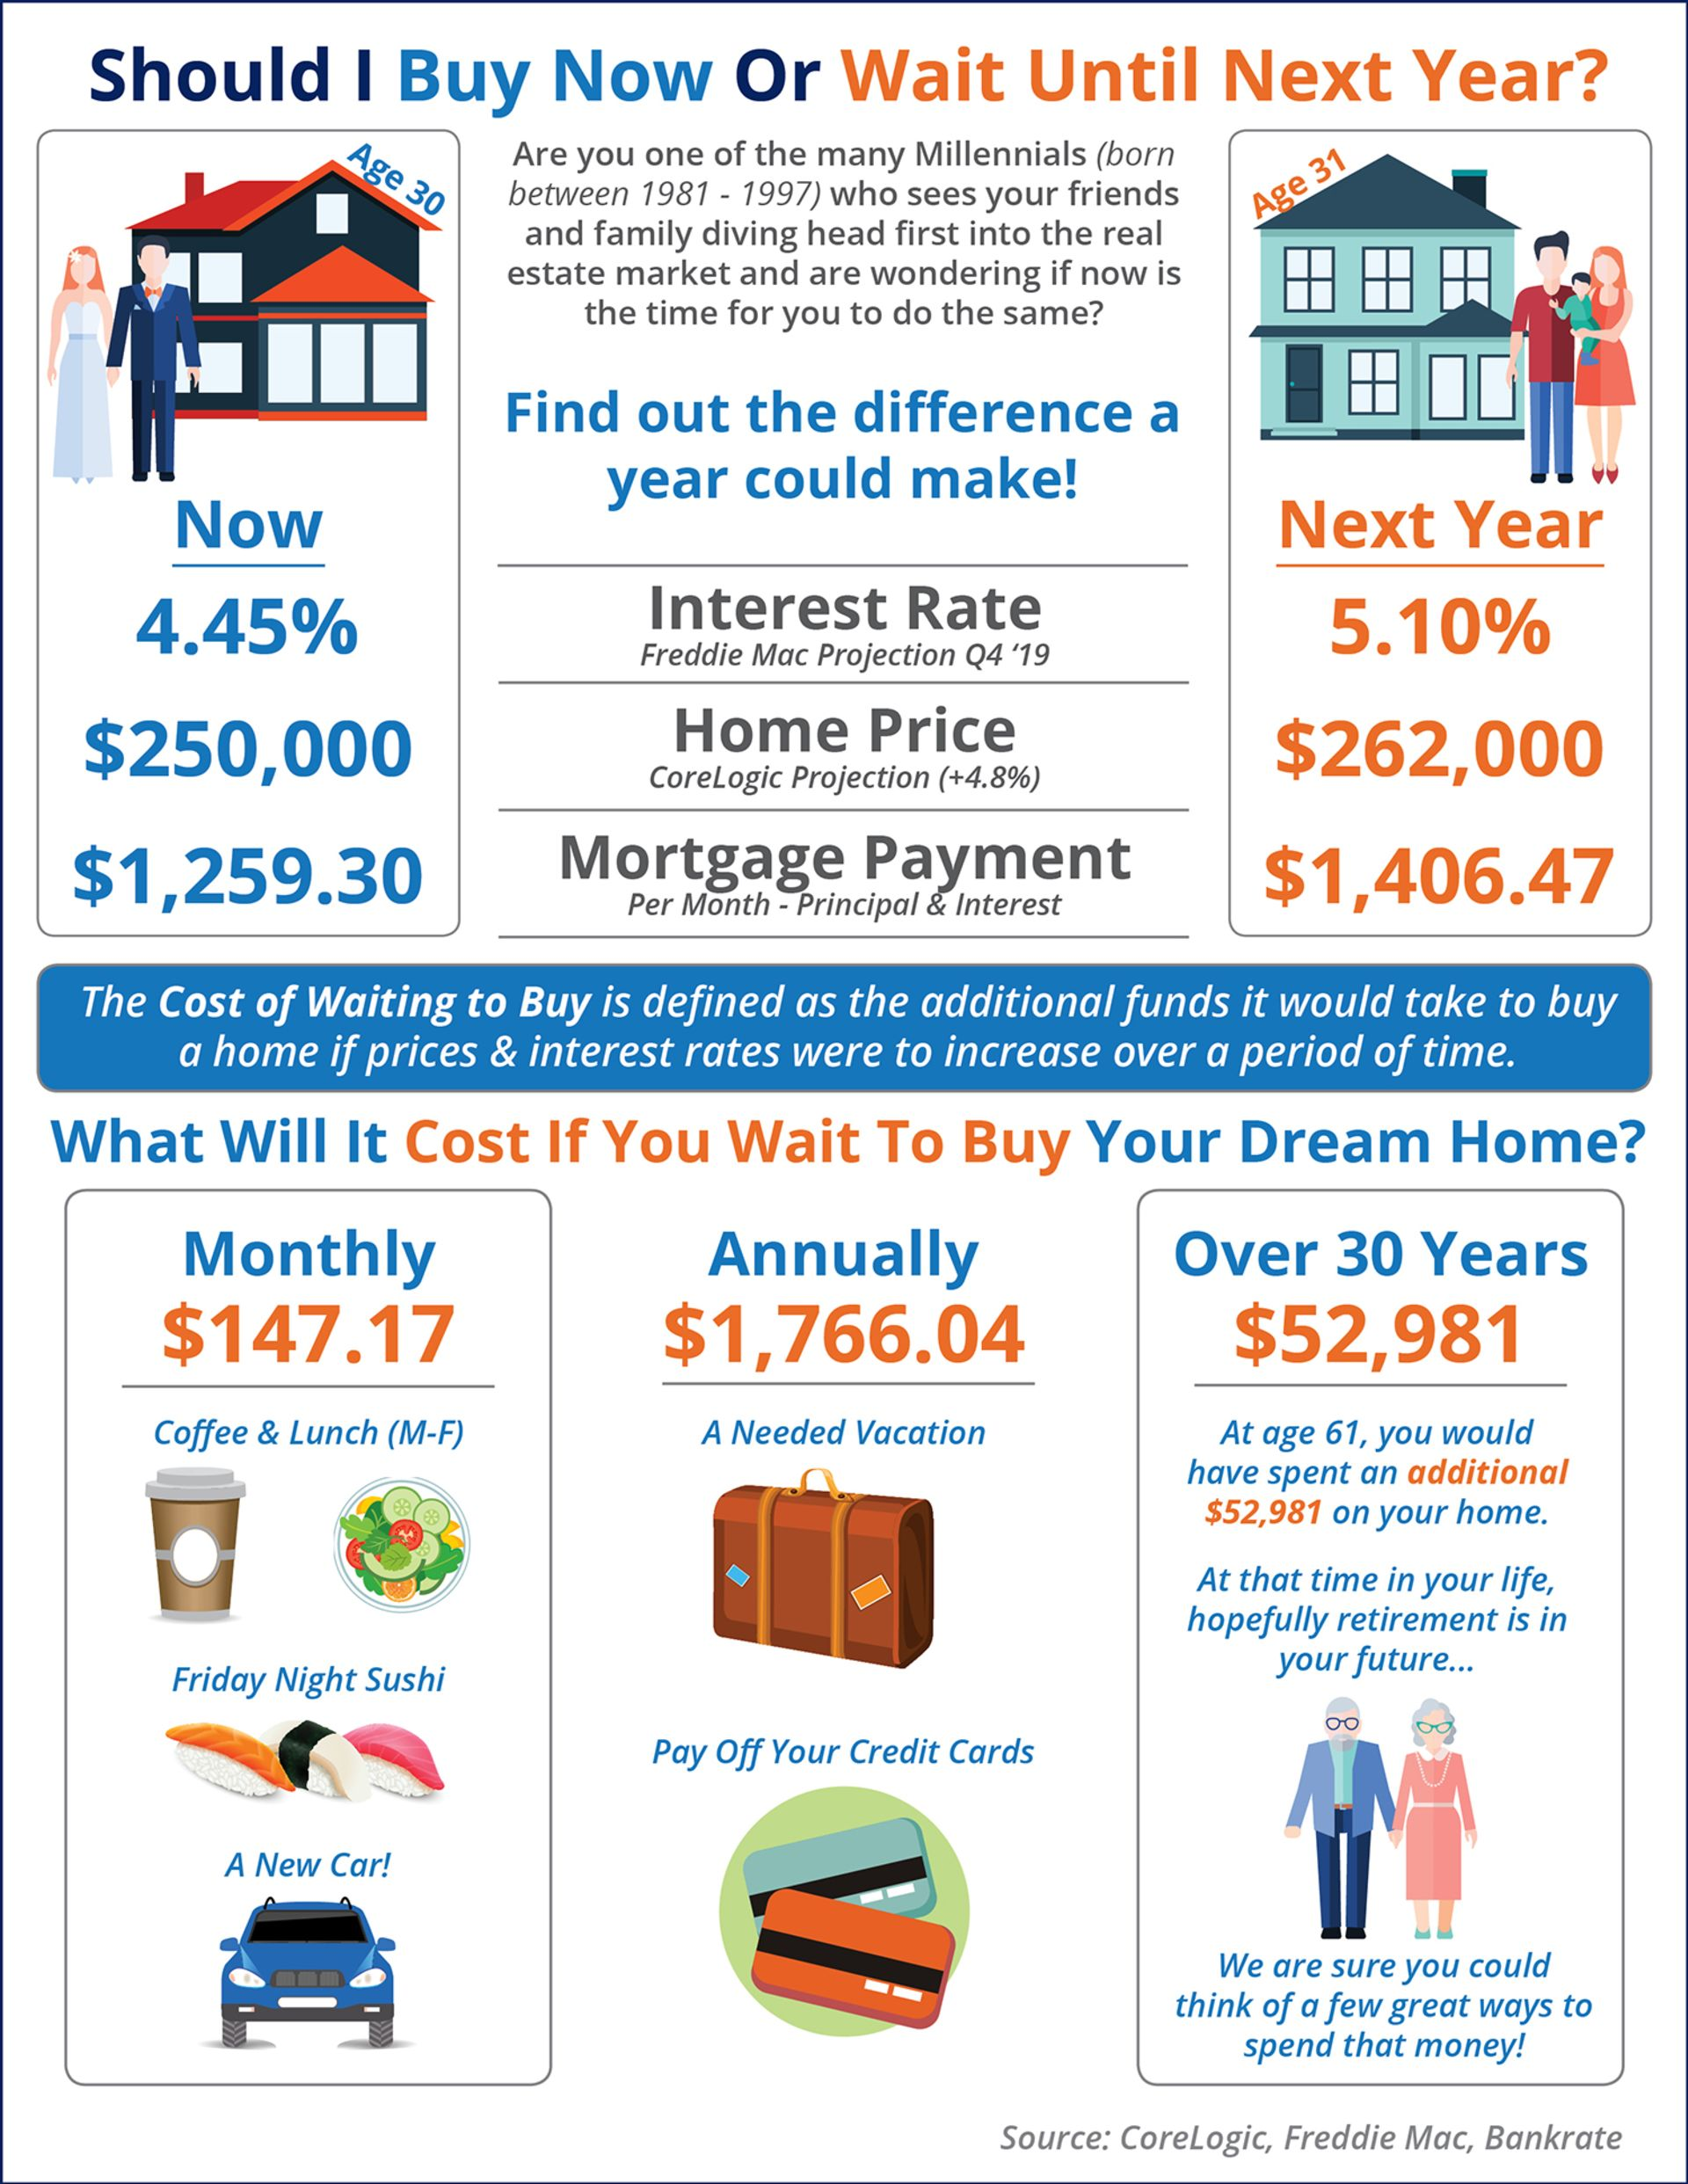 What is the Cost of Waiting Until NextYear to Buy?